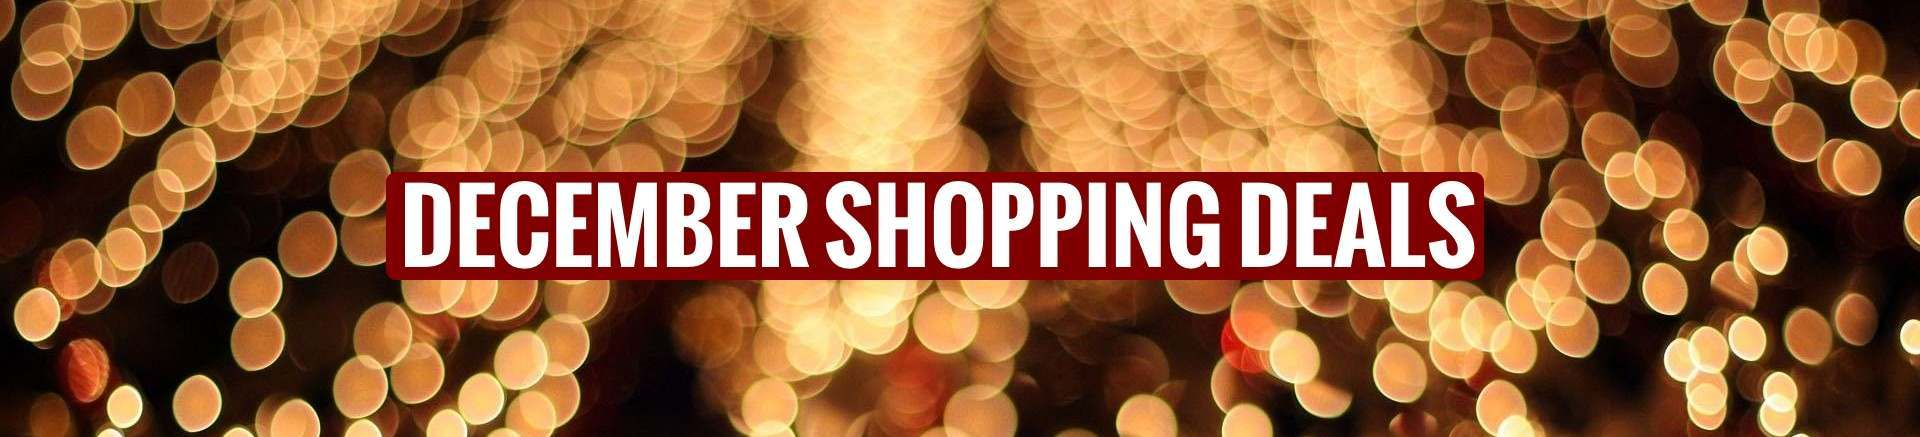 December Welly Shopping Deals